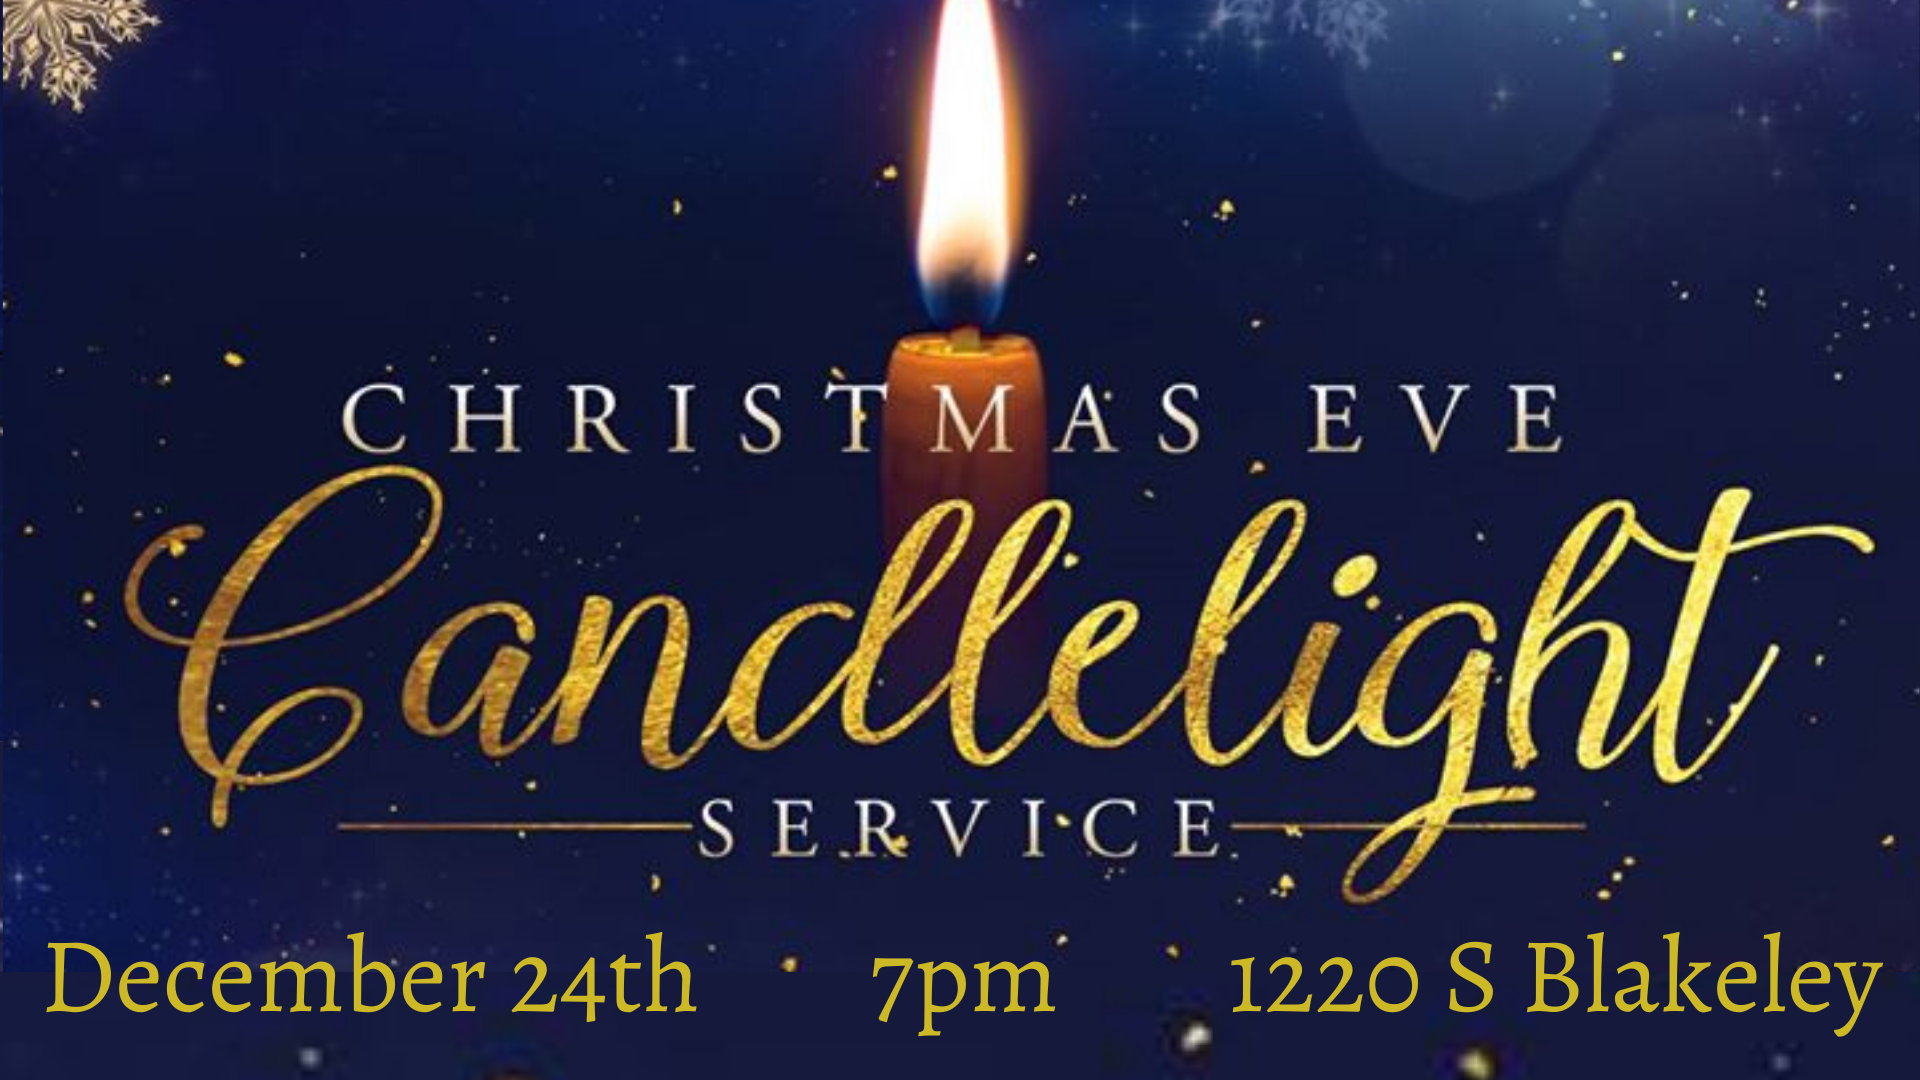 December 24th, 7pm __ 1220 S Blakeley